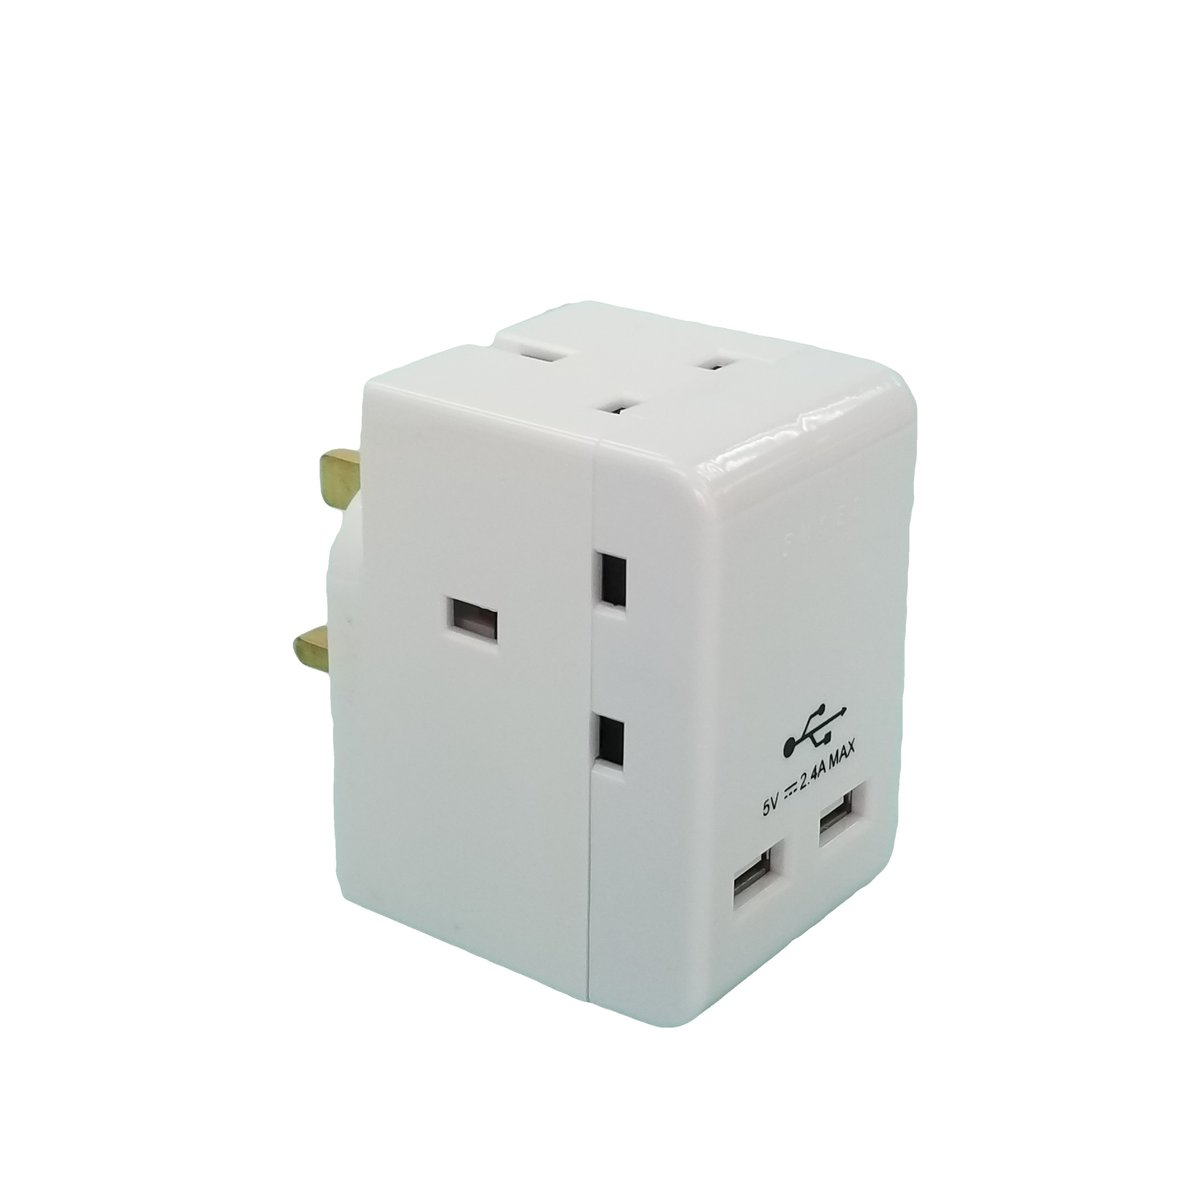 3 Way Adaptor with 2 USB Ports 2.4A